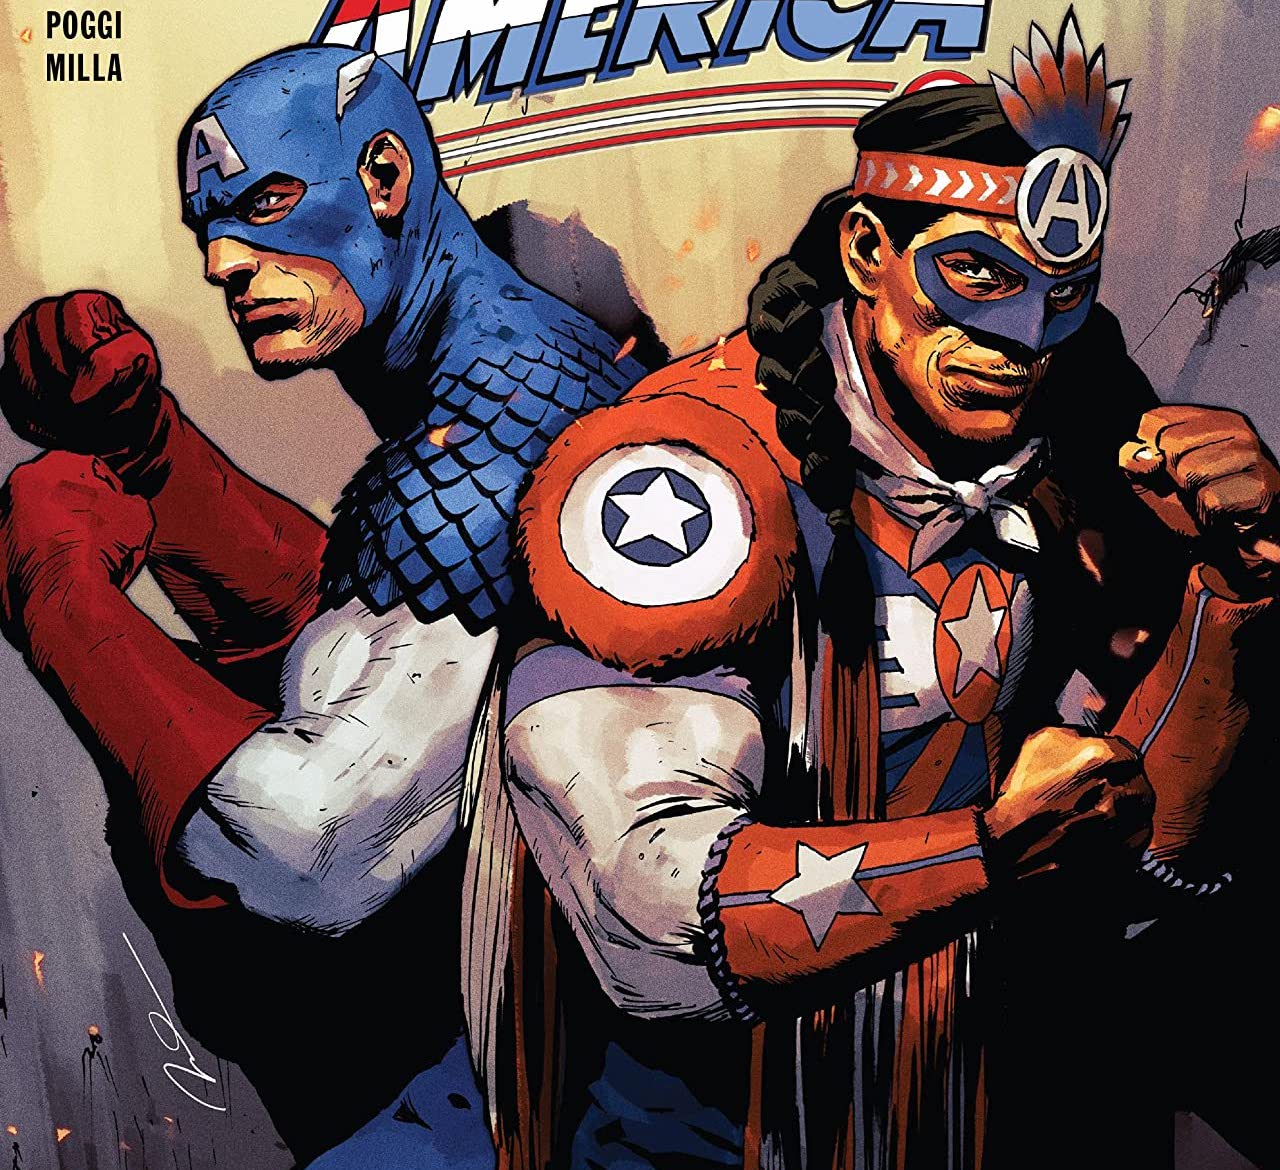 'The United States of Captain America' #3 continues to inspire